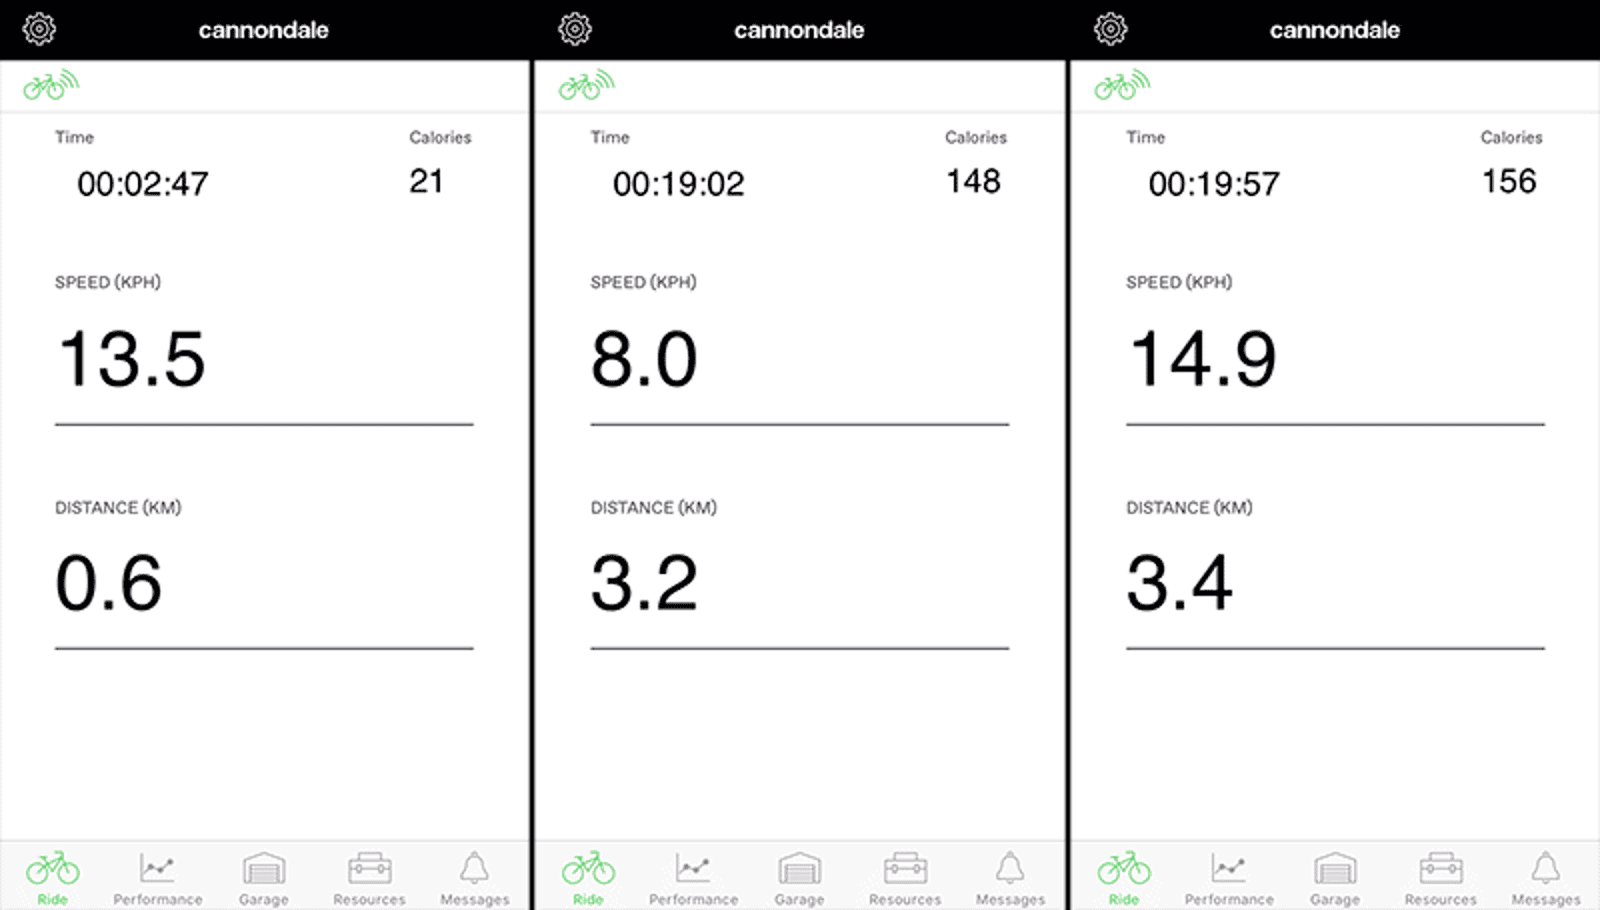 The Cannondale app can serve as a dashboard for the Treadewell EQ, providing real time info on your speed, distance, and even how many calories you've burned so far.